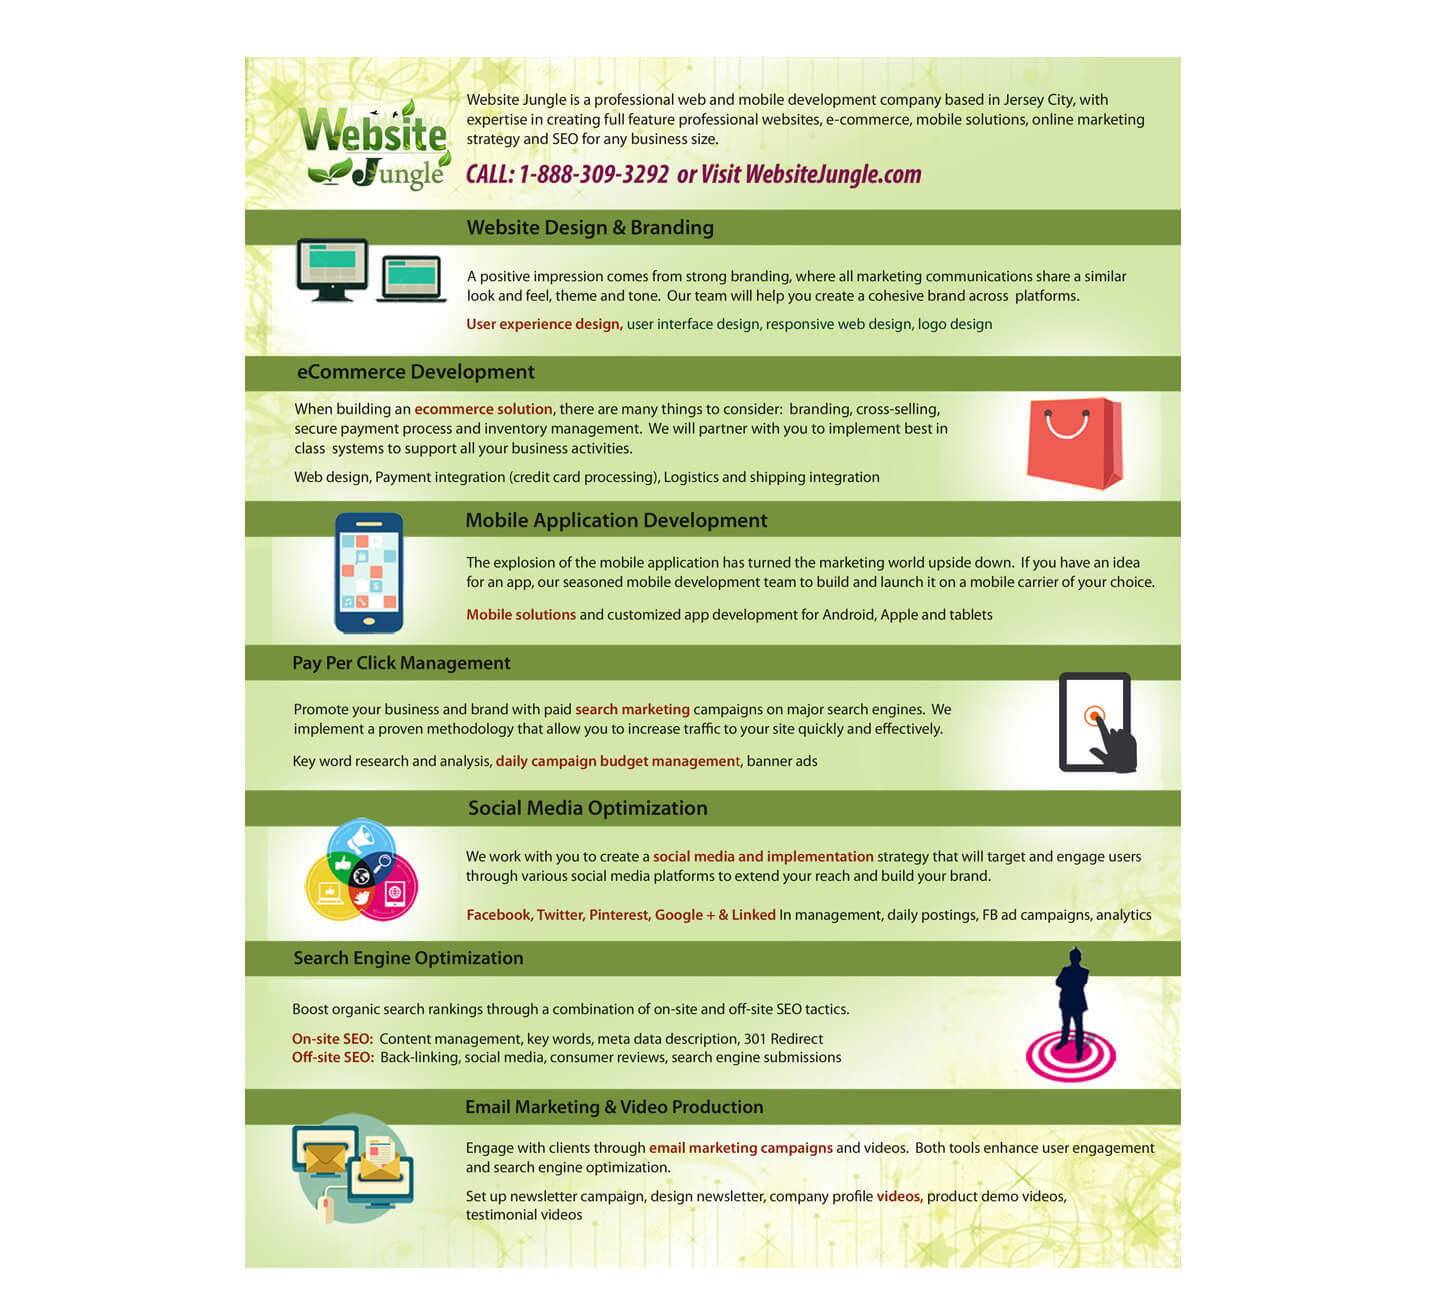 Web Site jungle-Flyer